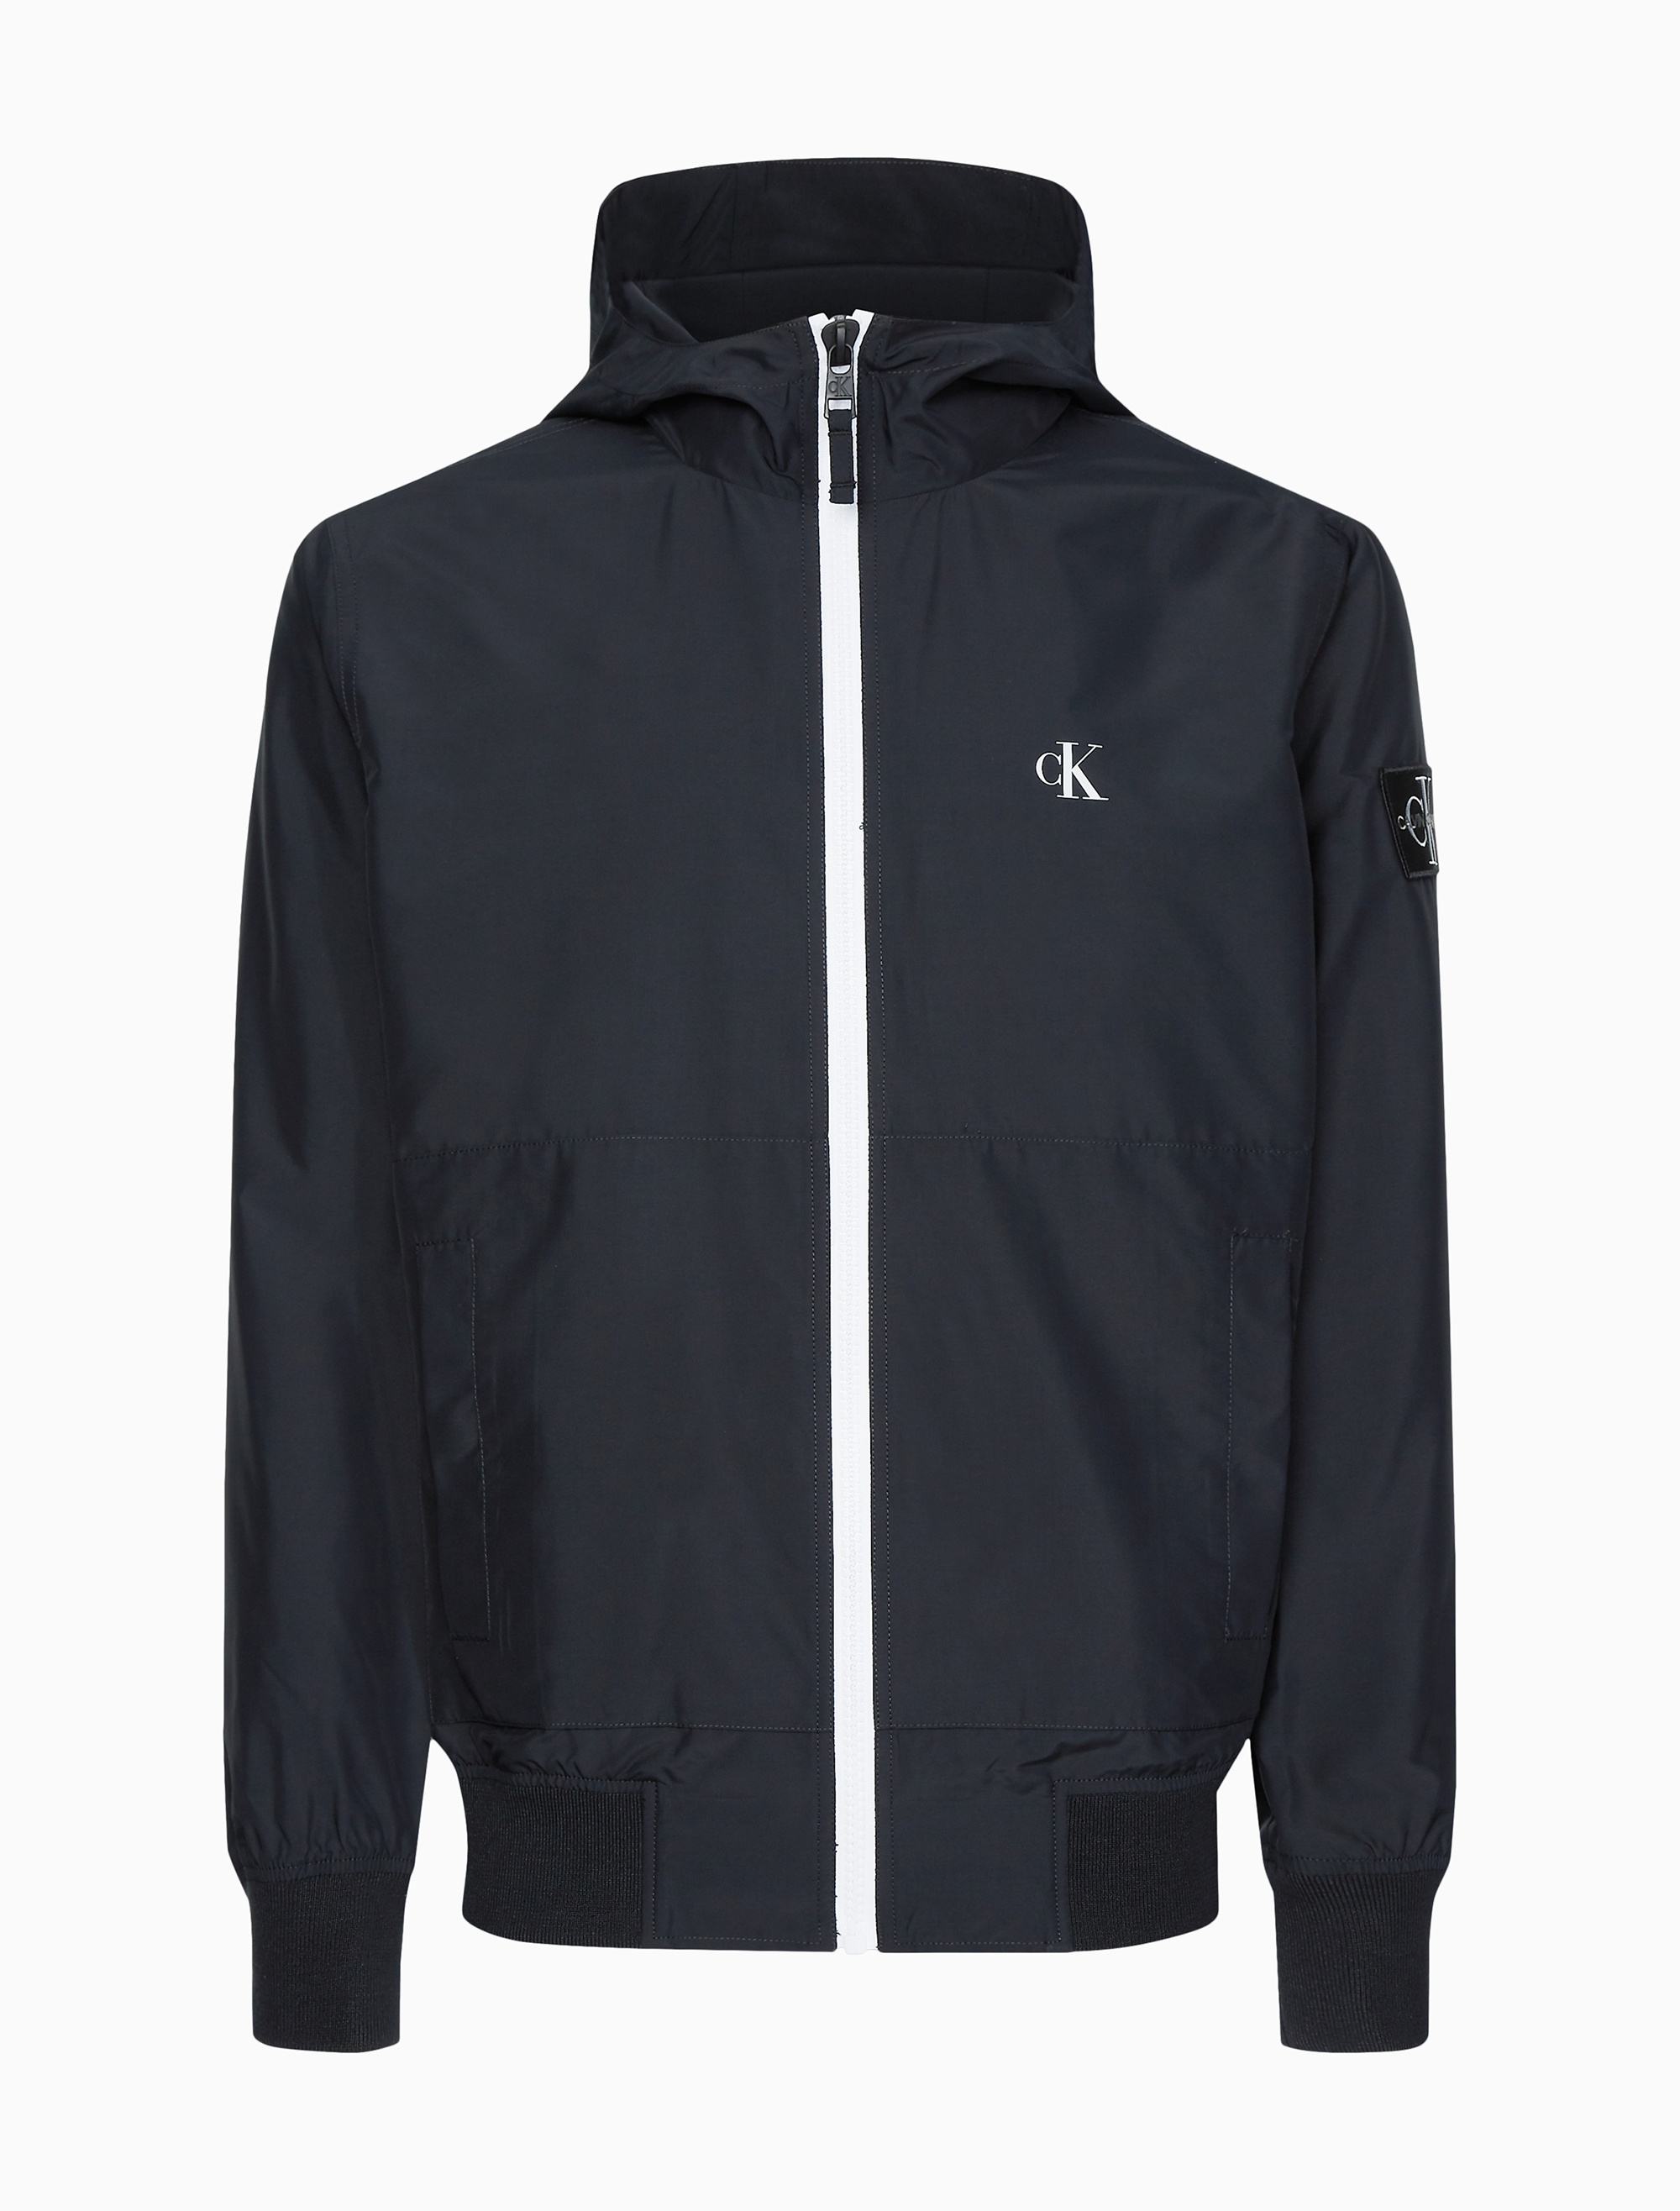 Calvin Klein Large Black Water Resistant Wind Protection